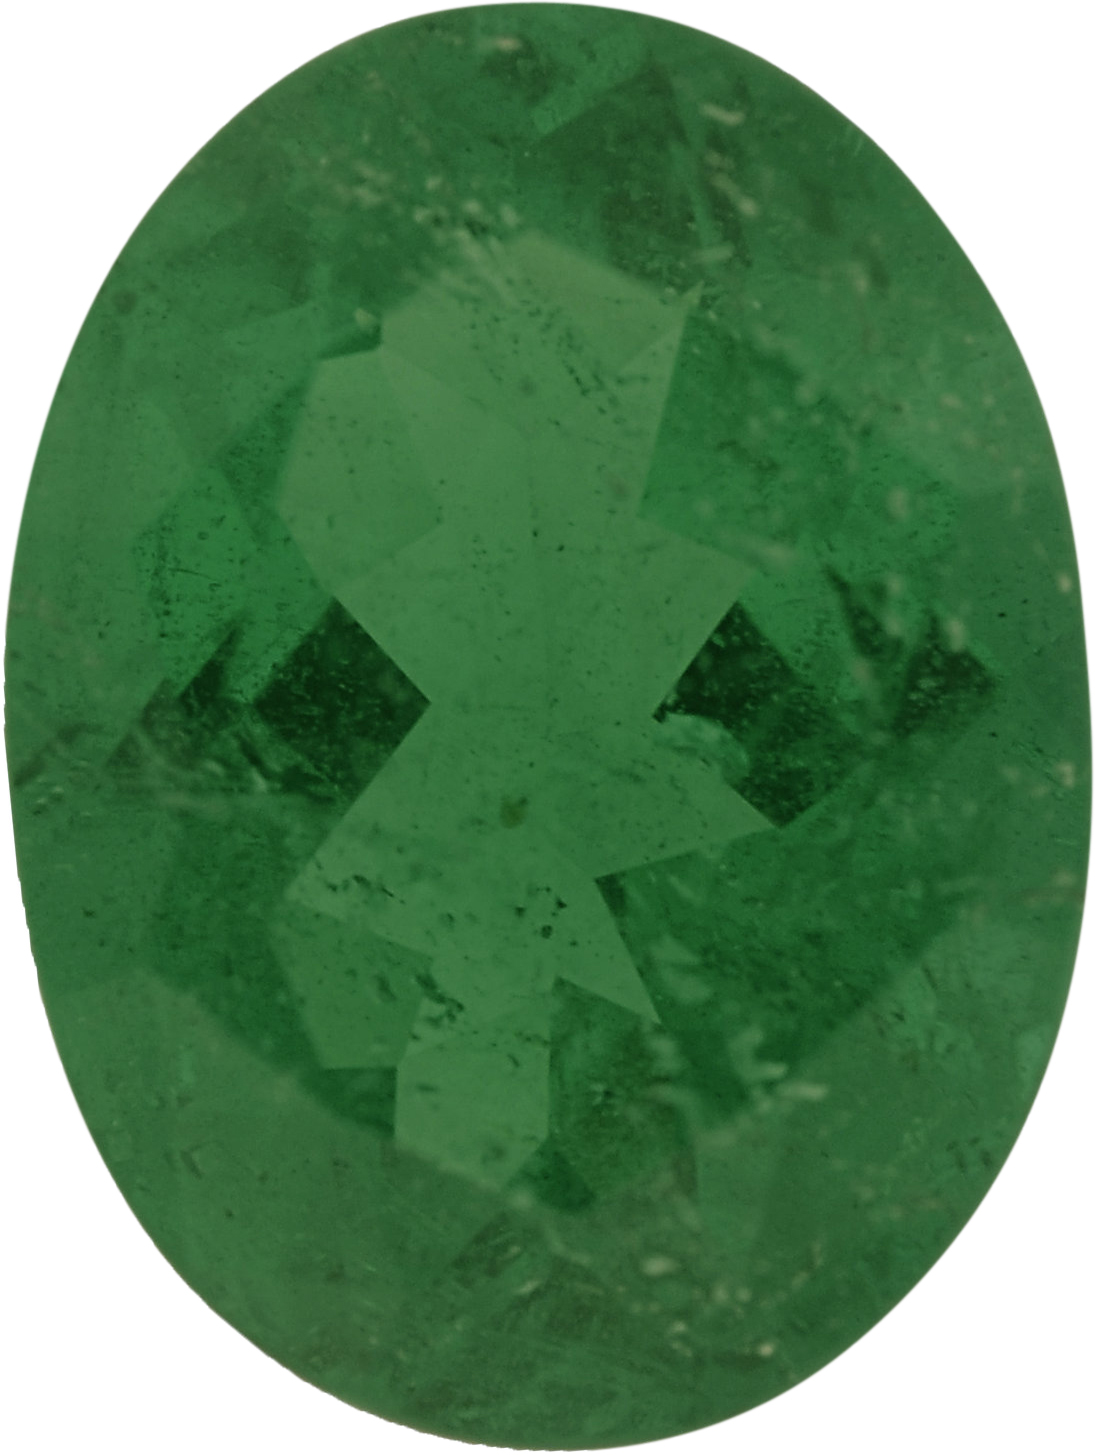 7.6 x 5.73 mm, Emerald Loose Gemstone in Oval Cut, 0.89 carats